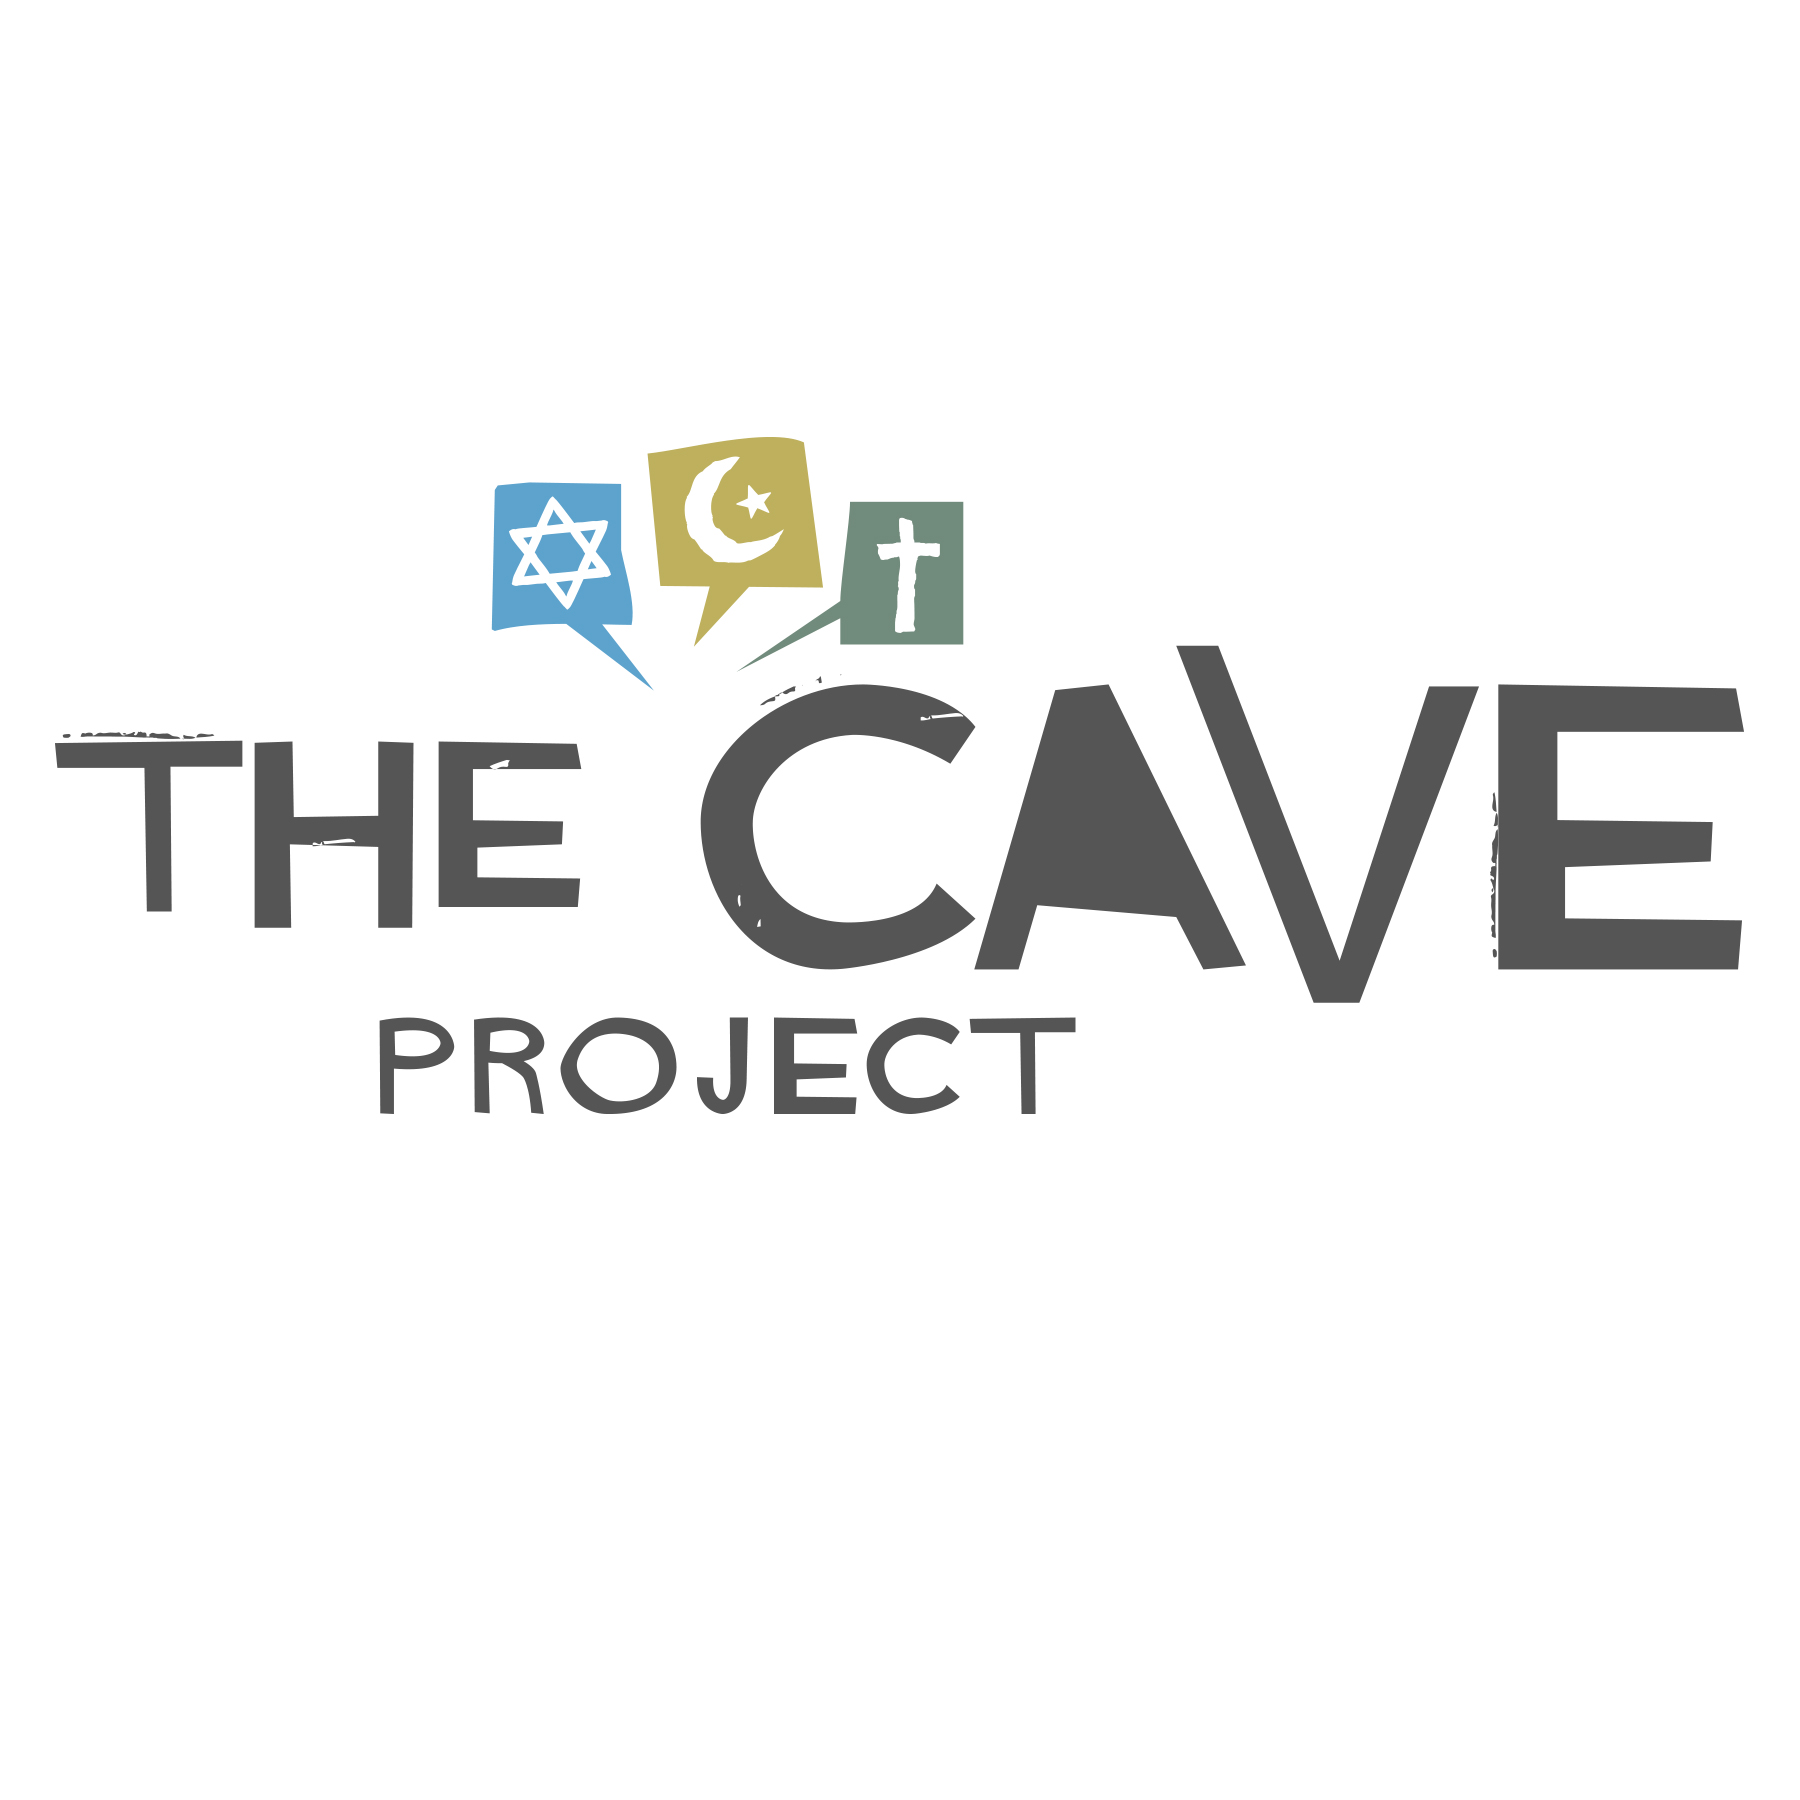 The Cave Project logo